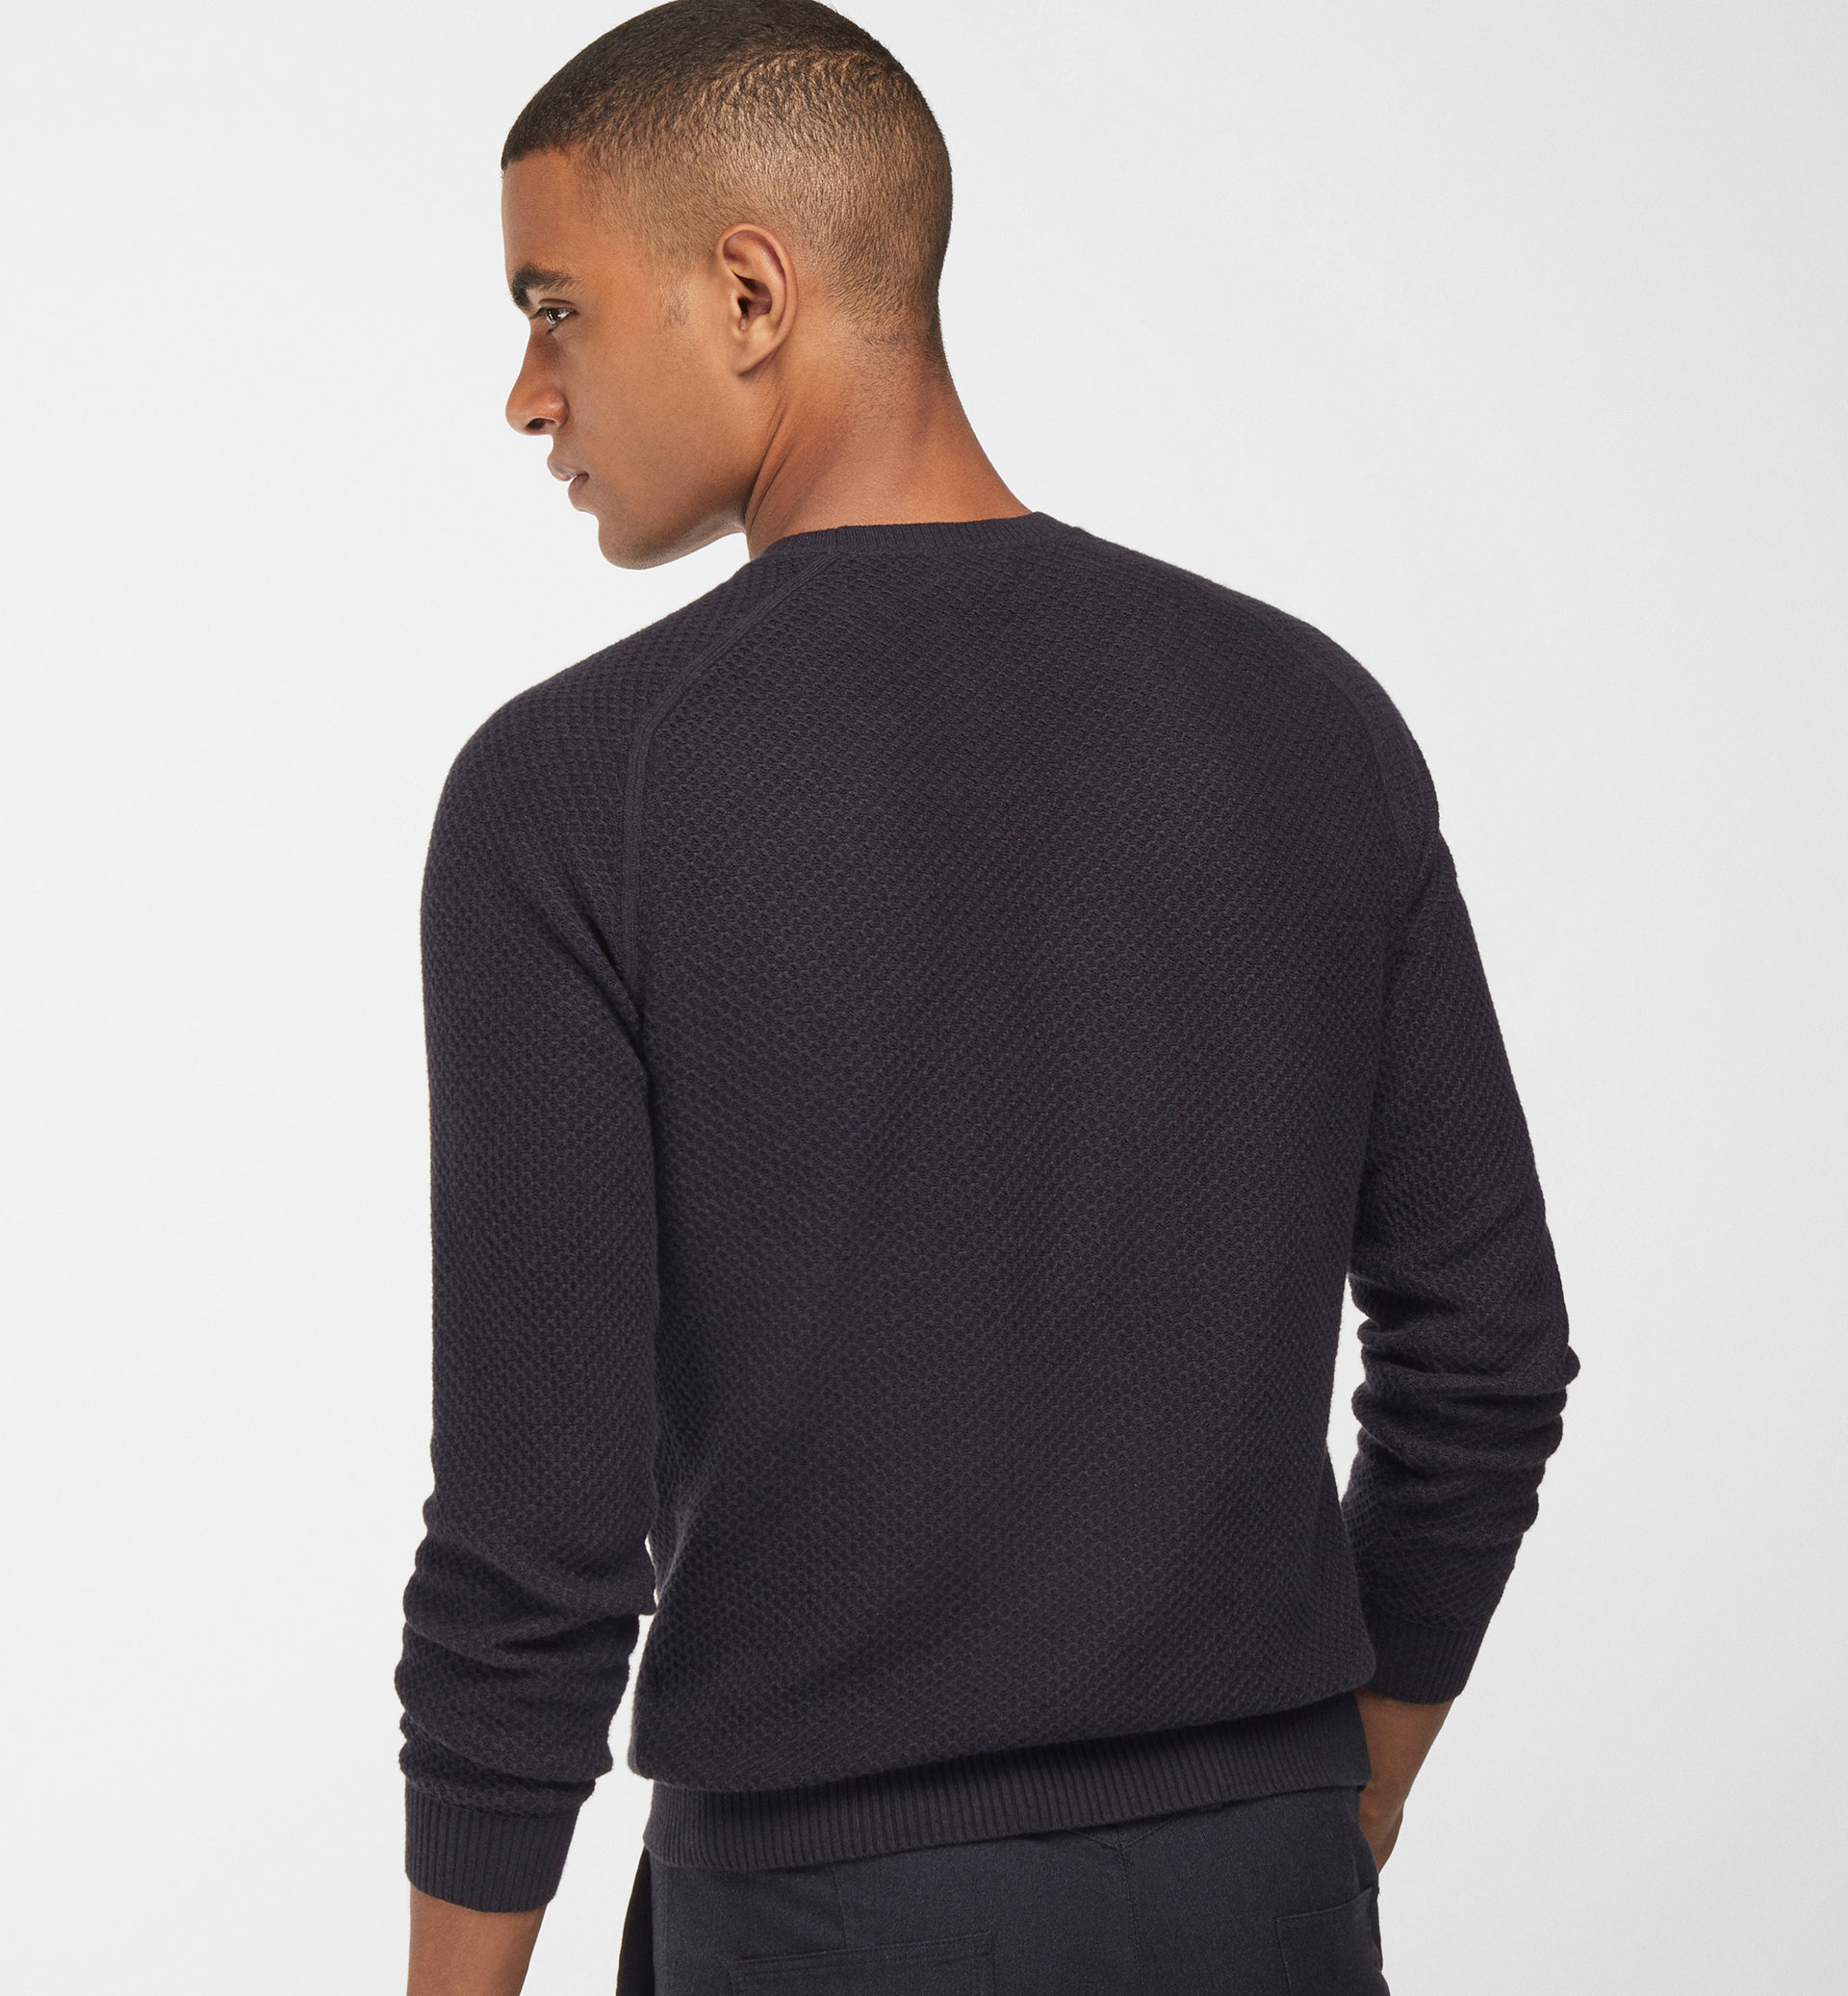 ROUND NECK TEXTURED WEAVE SWEATER